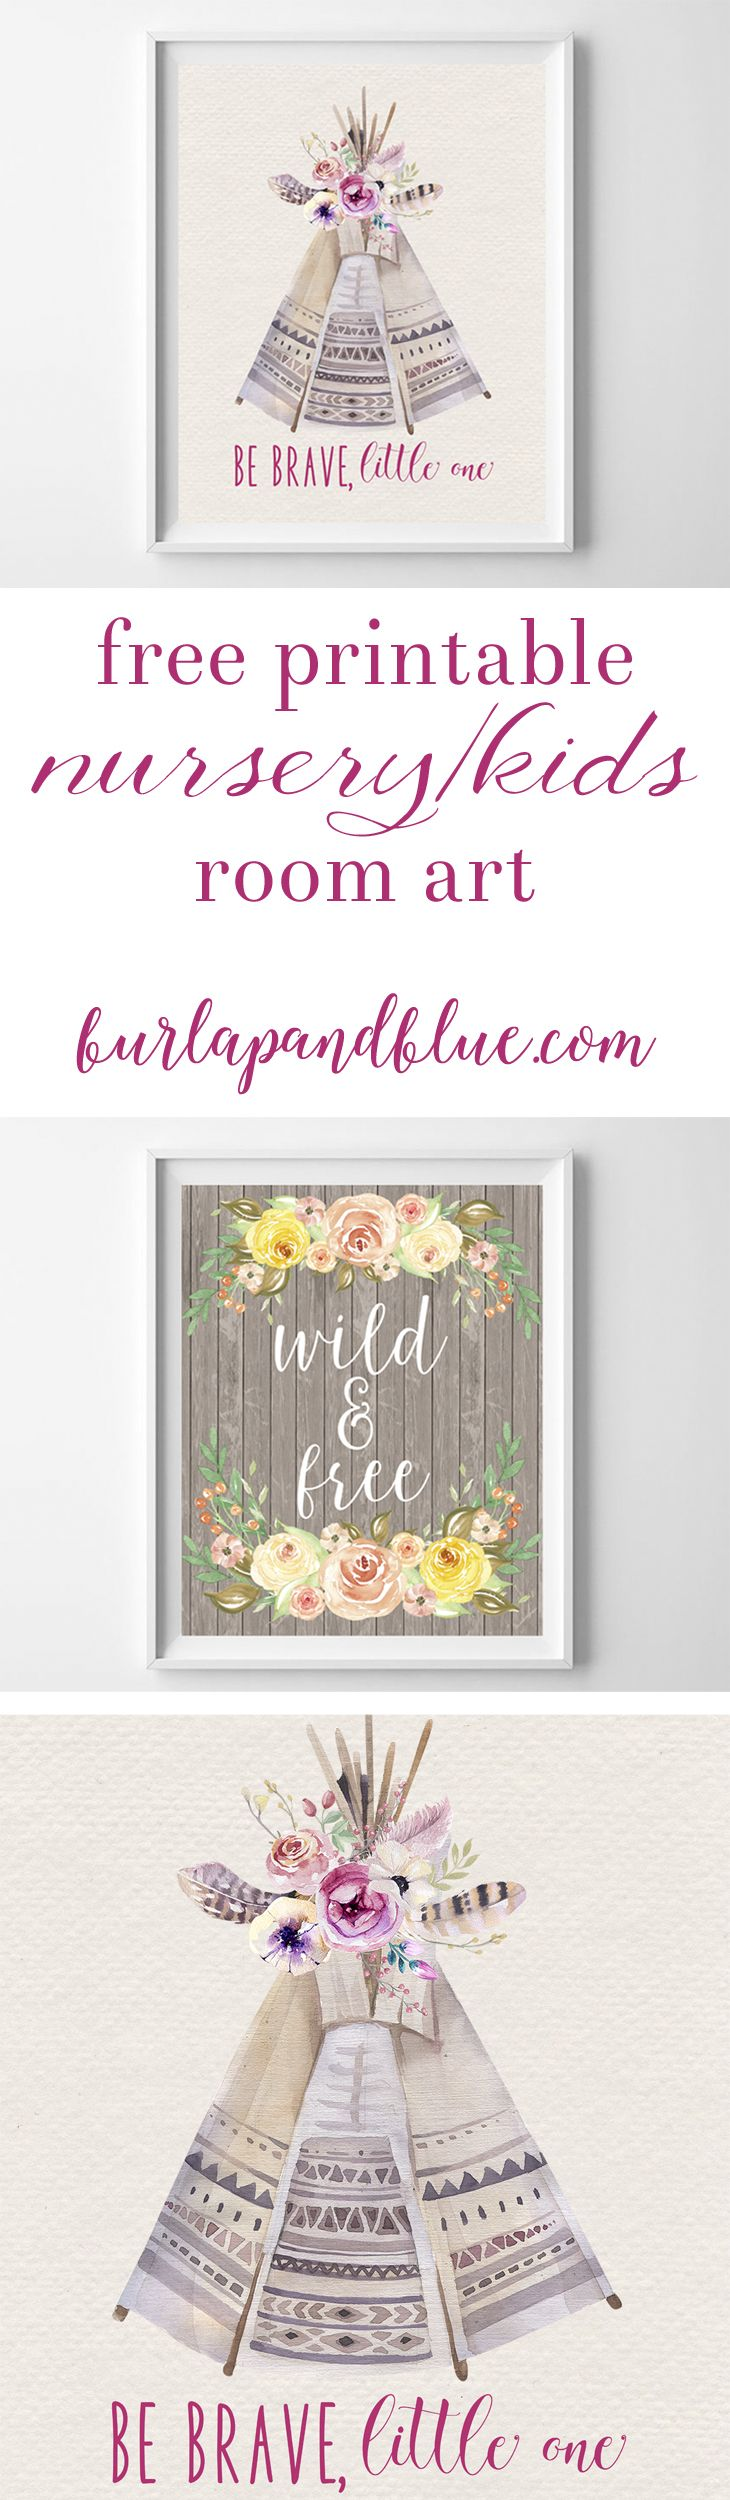 "Free printable art for nursery / kids! Two free printables to download, frame and hang! includes ""be brave little one"" & ""wild & free"""